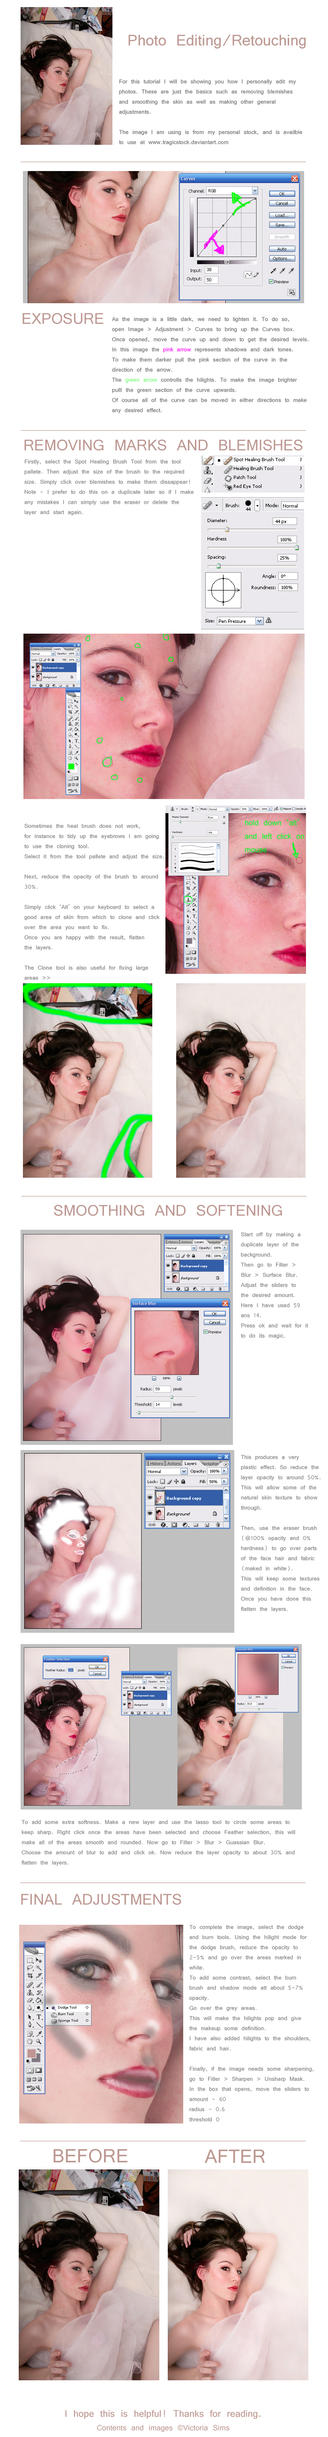 Basic Photo Editing Tutorial by TheTragicTruth-Of-Me